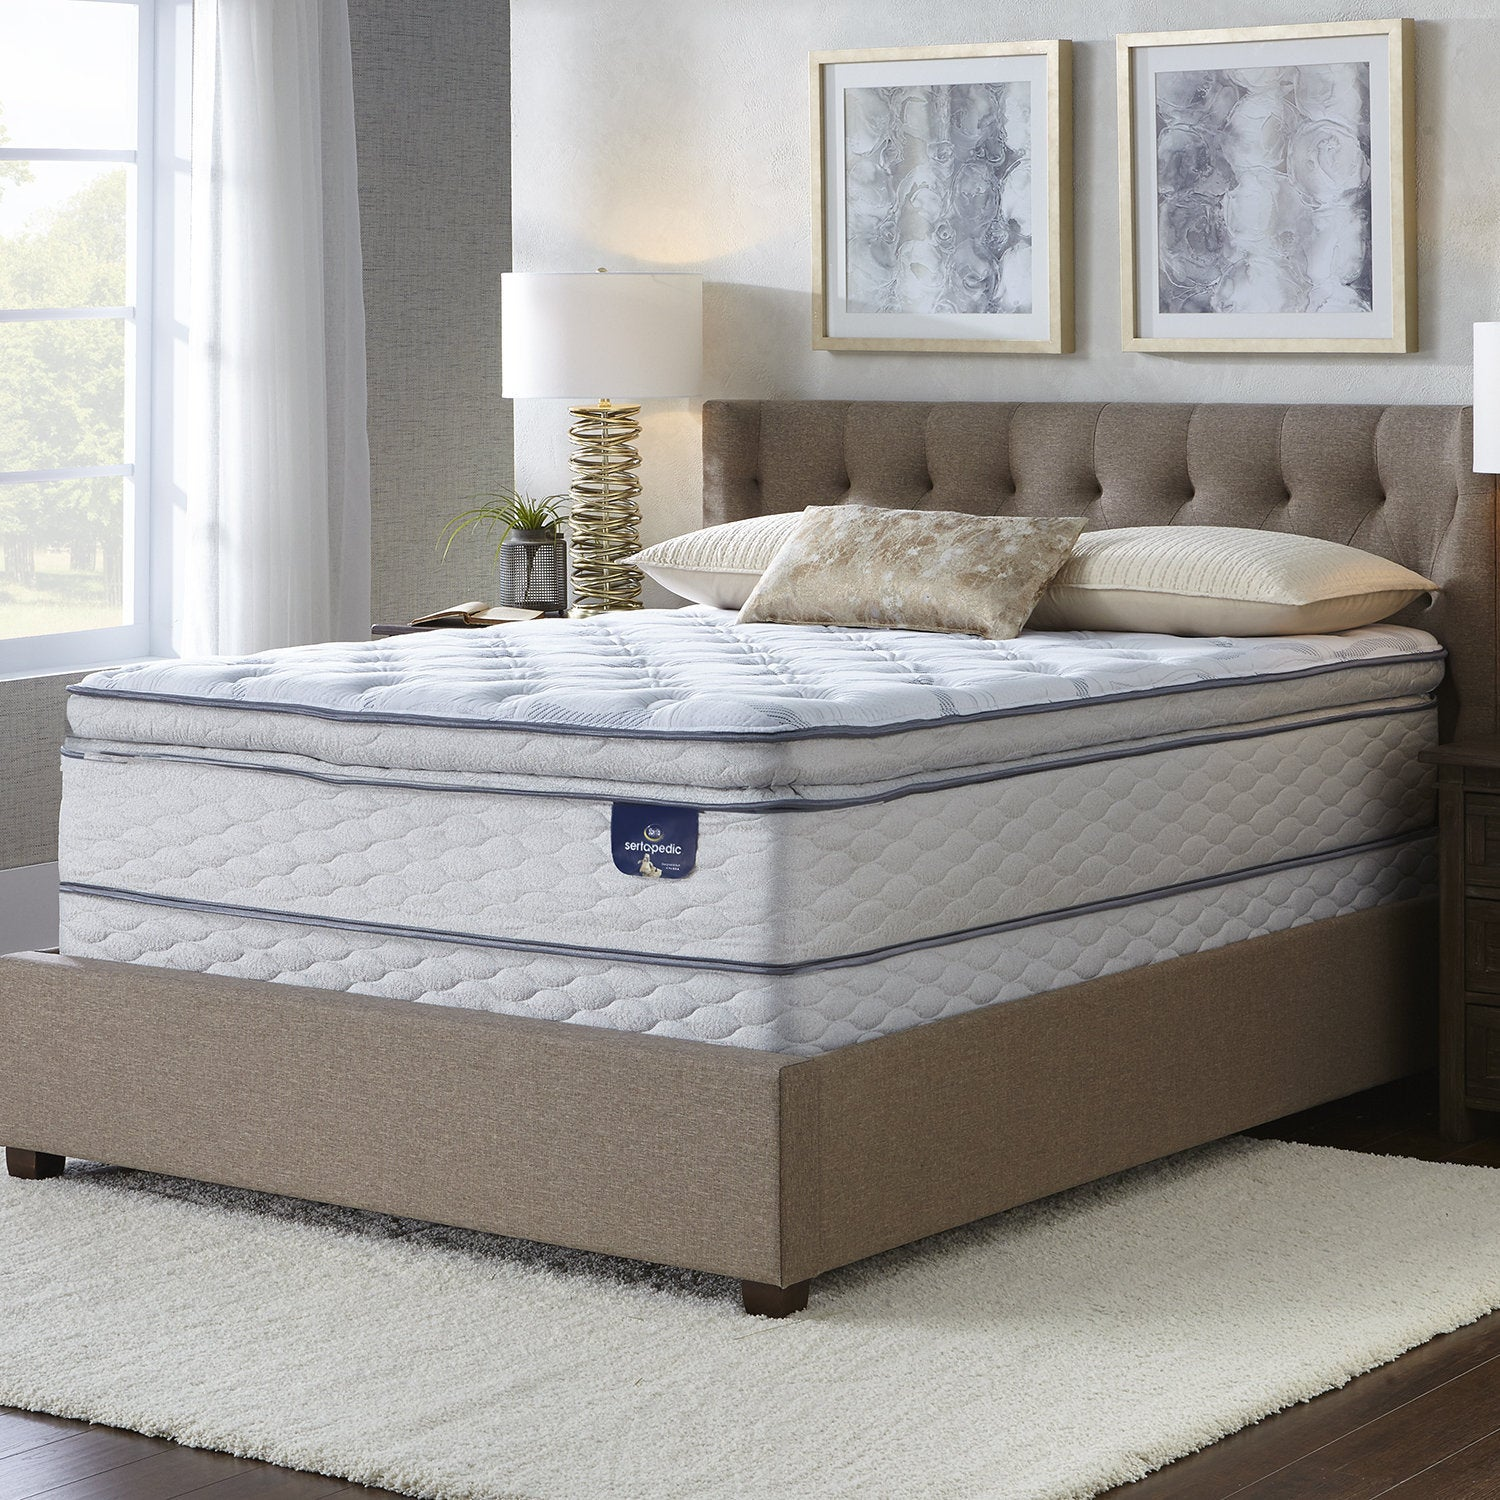 product sleep innovations xl twin twinxltopper inch topper amazon pillow secondary mattress memory foam